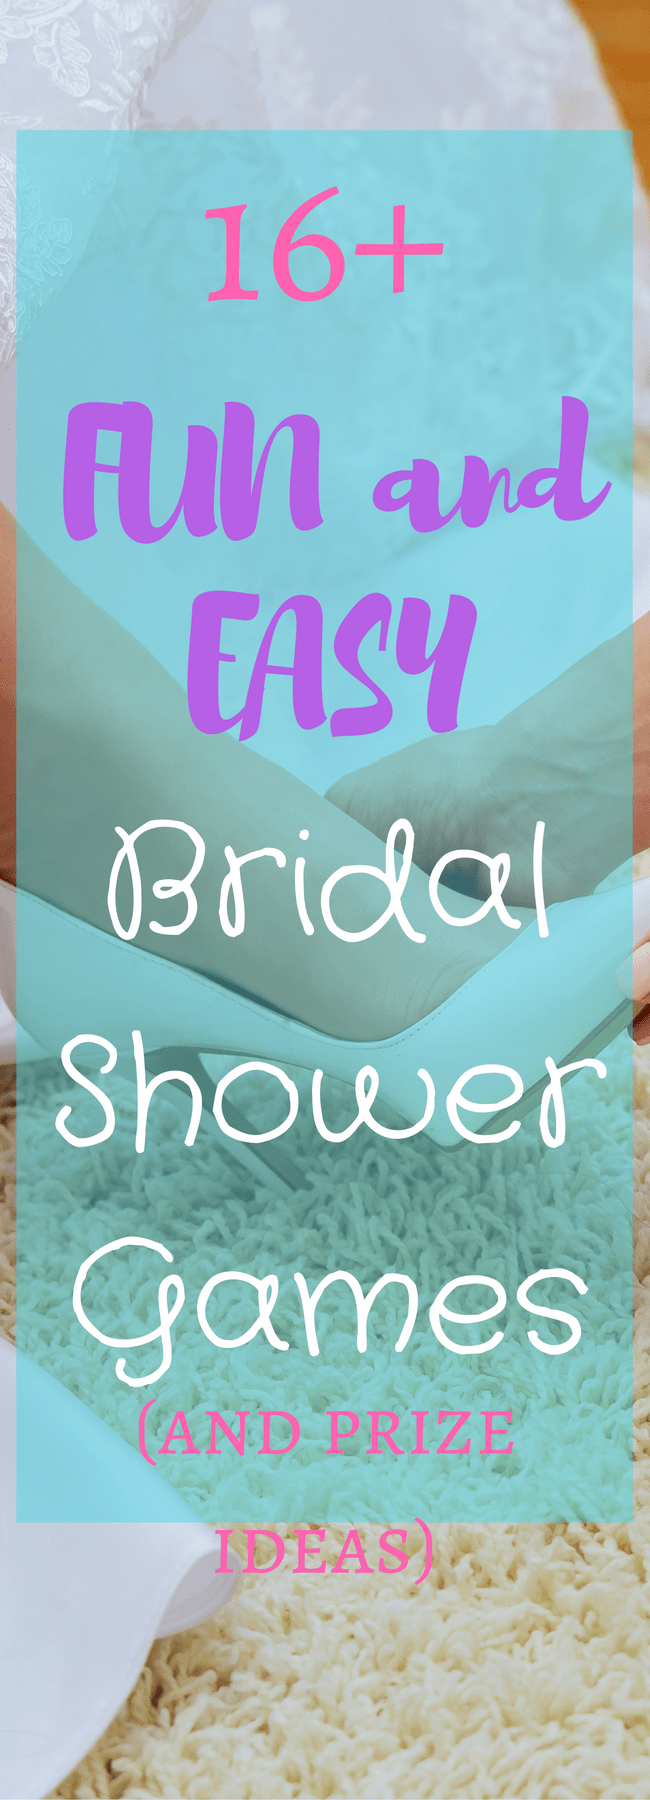 bridal shower games / bridal shower games free printables / bridal shower game prizes / bridal shower games funny / bridal shower games and ideas / bridal shower game for large groups bridal shower game / unique hilarious bridal shower game / easy bridal shower game / bridal shower game printables